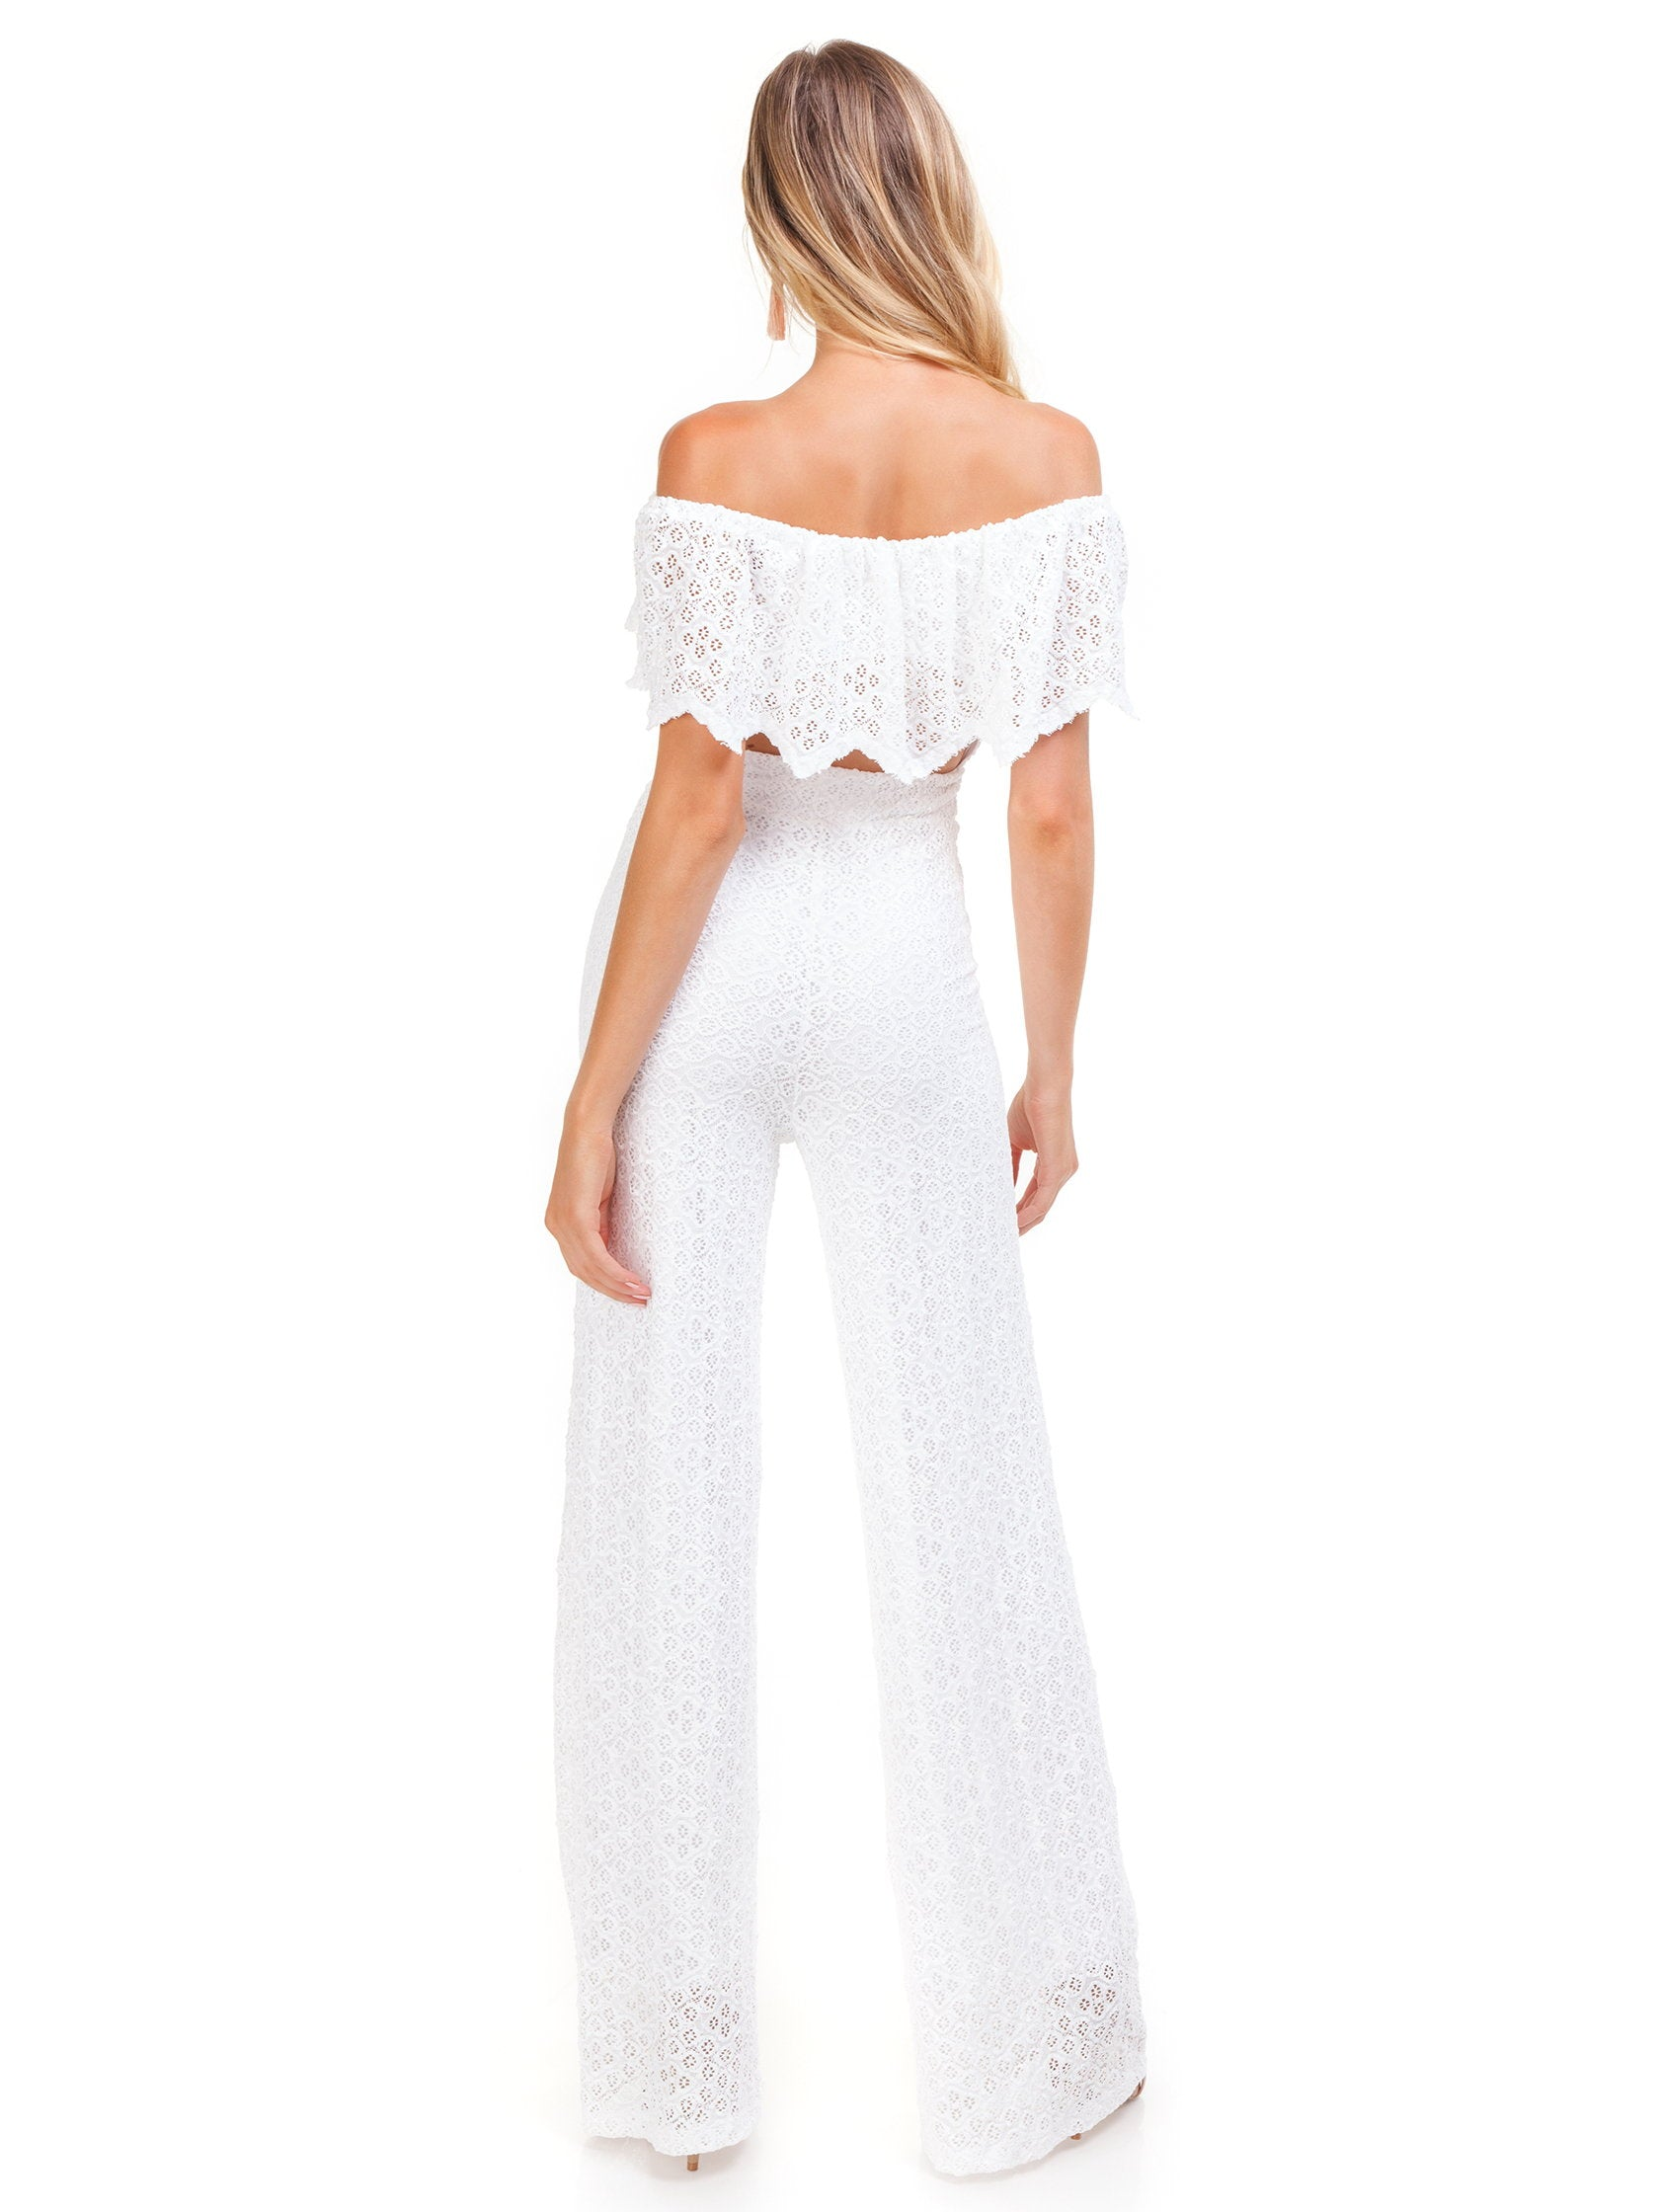 Women wearing a jumpsuit rental from Nightcap Clothing called Diamond Lace Positano Jumpsuit